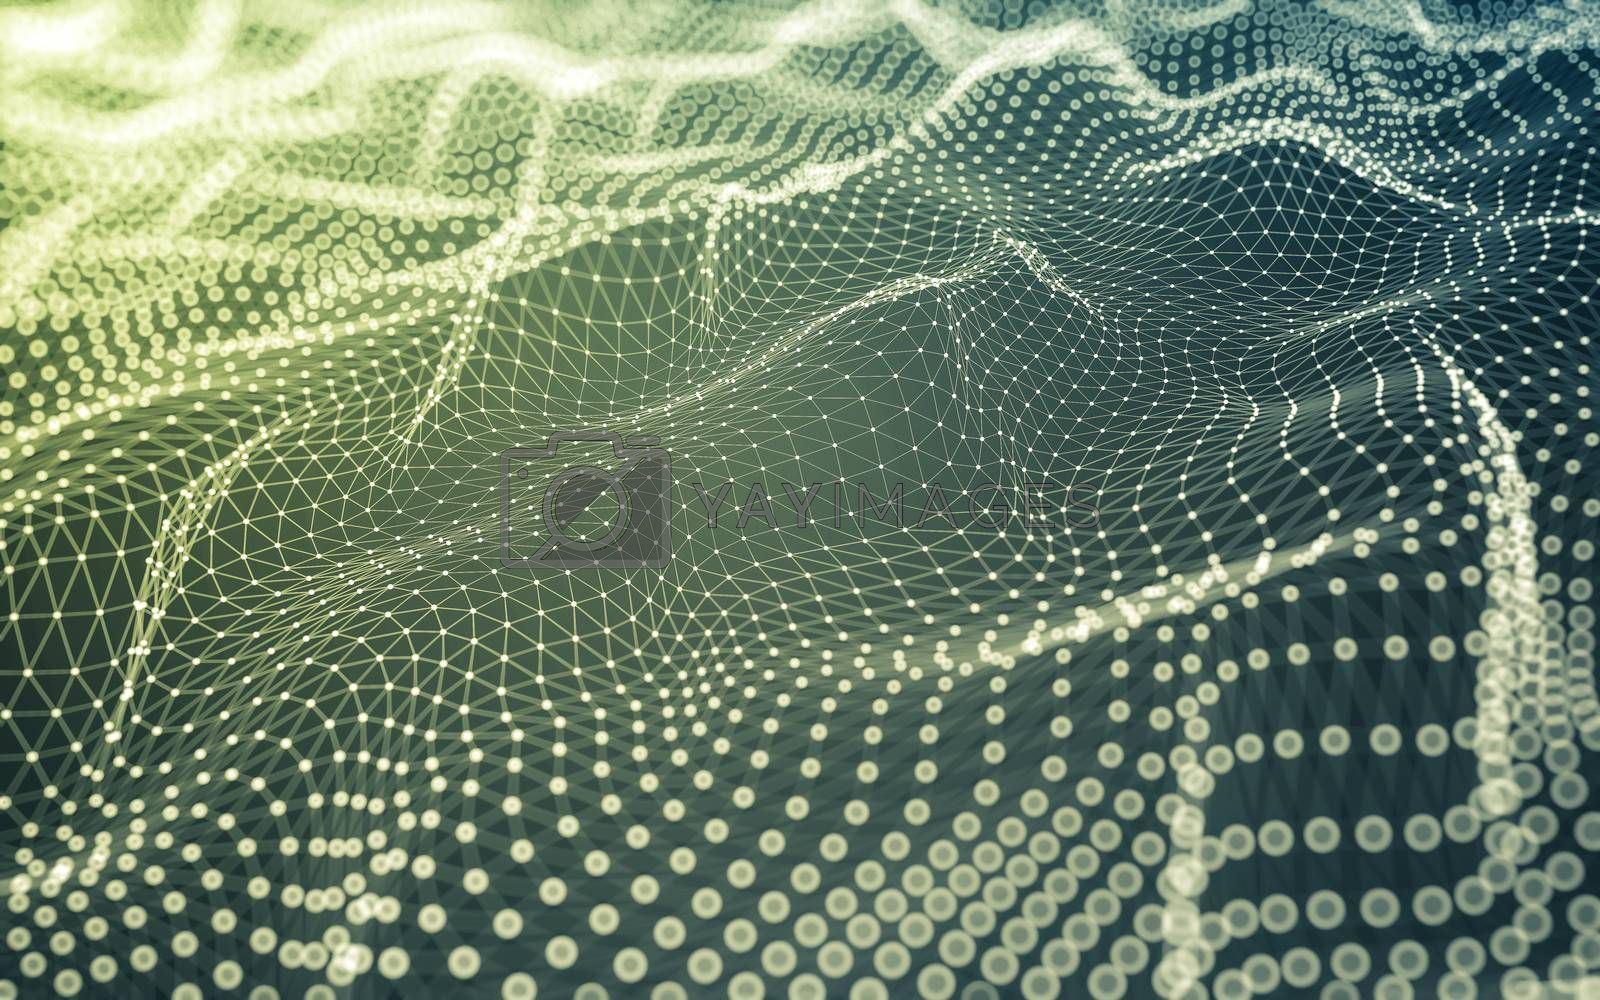 Royalty free image of Abstract background. Molecules technology with polygonal shapes, by teerawit